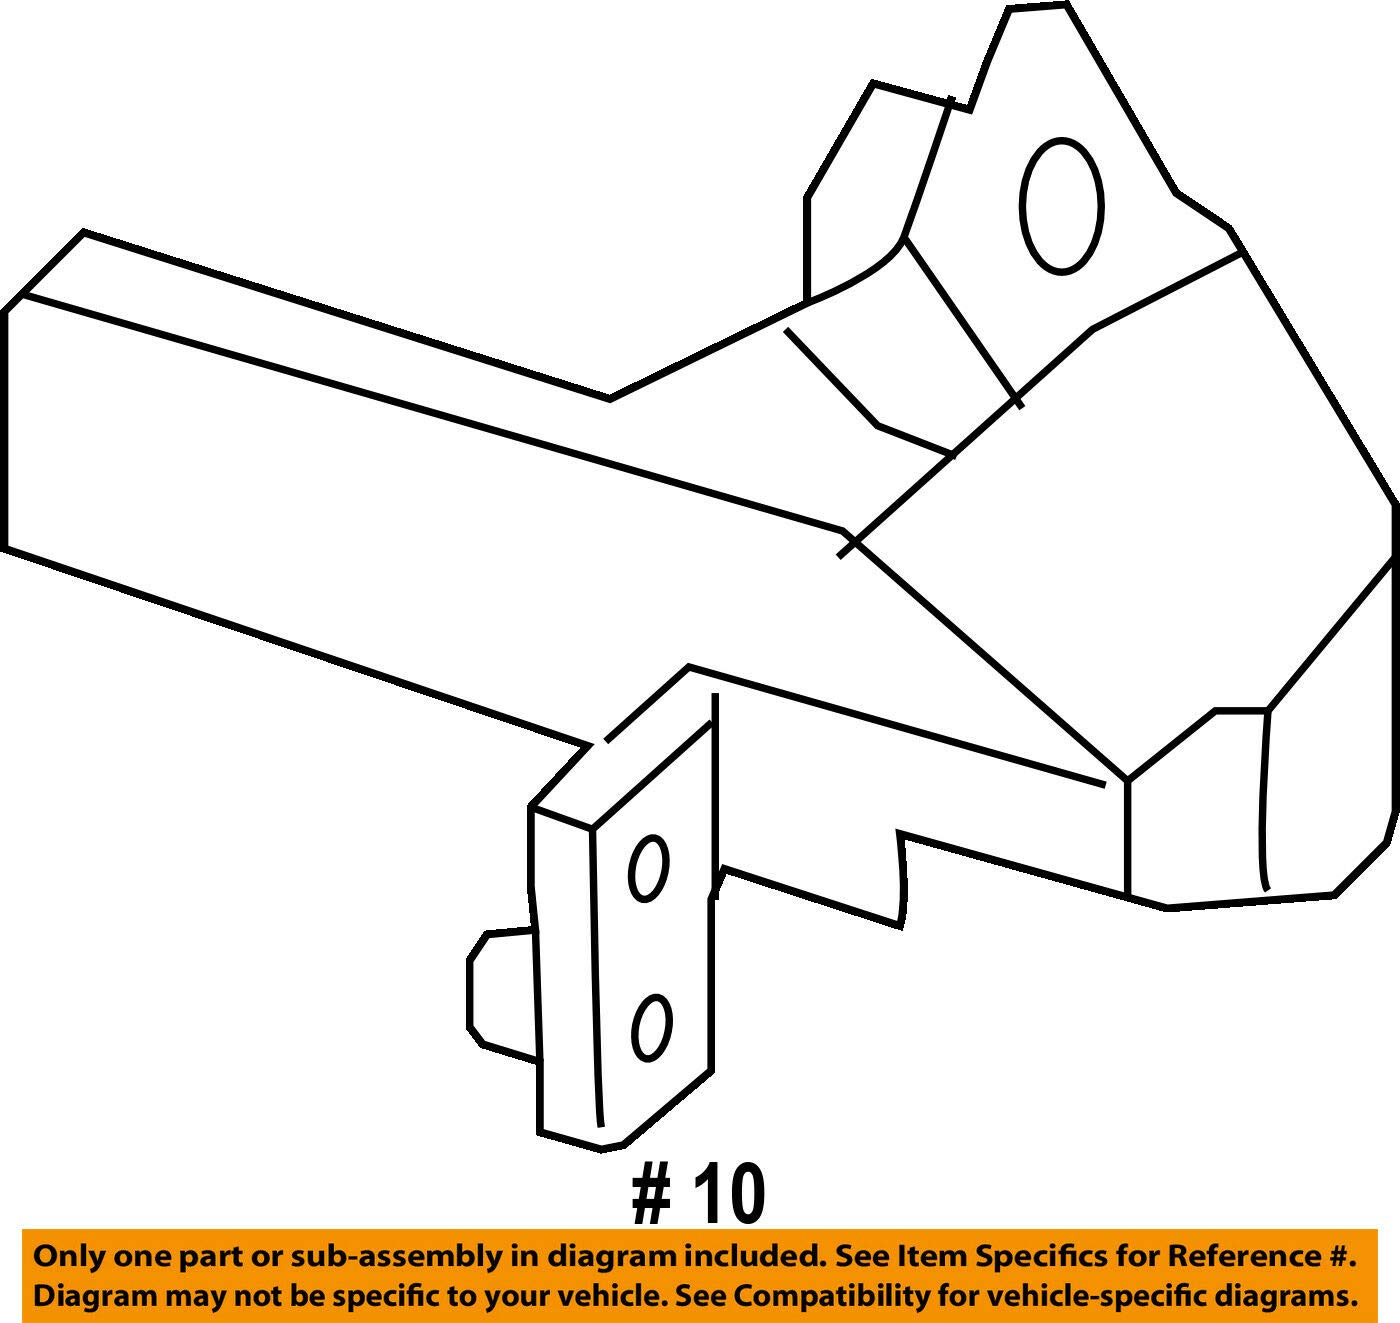 Genuine Mercedes-Benz Impact Bar Side Bracket 205-620-35-01 by Mercedes Benz (Image #2)